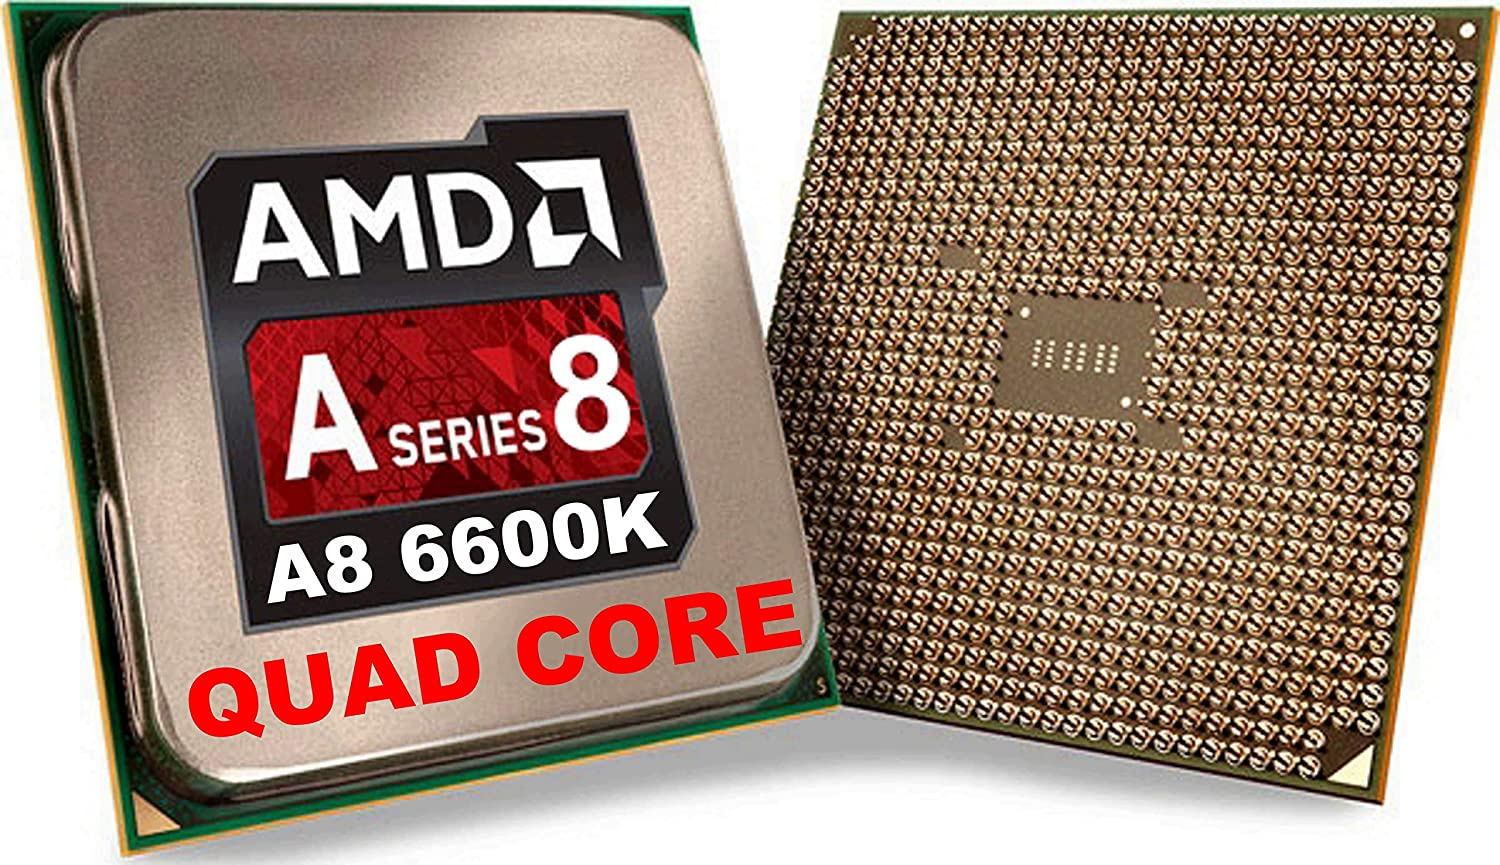 Amazon Com Amd A8 6600k Quad Core 4 Core 3 90 Ghz Processor Socket Fm2oem Pack 4 Mb Yes 4 20 Ghz Overclocking Speed 32 Nm Amd Radeon Hd